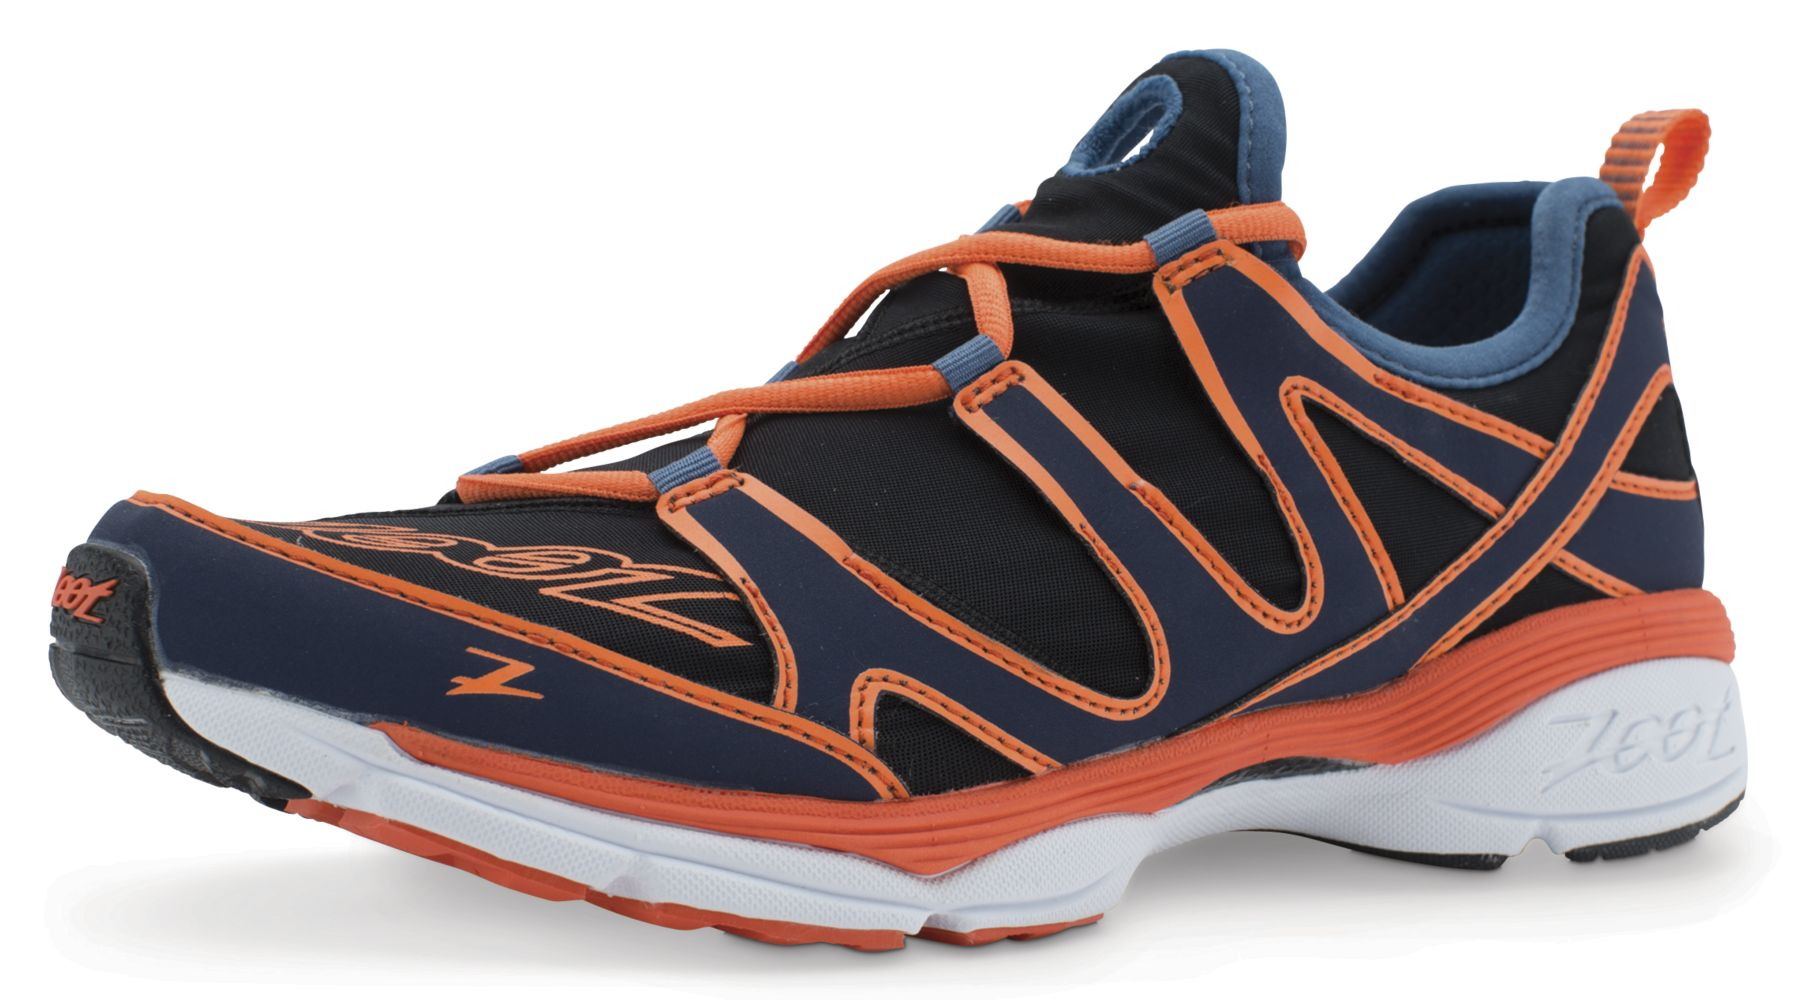 Zoot Sports Ultra Race 3.0 Tri Running Shoes (For Men) 116